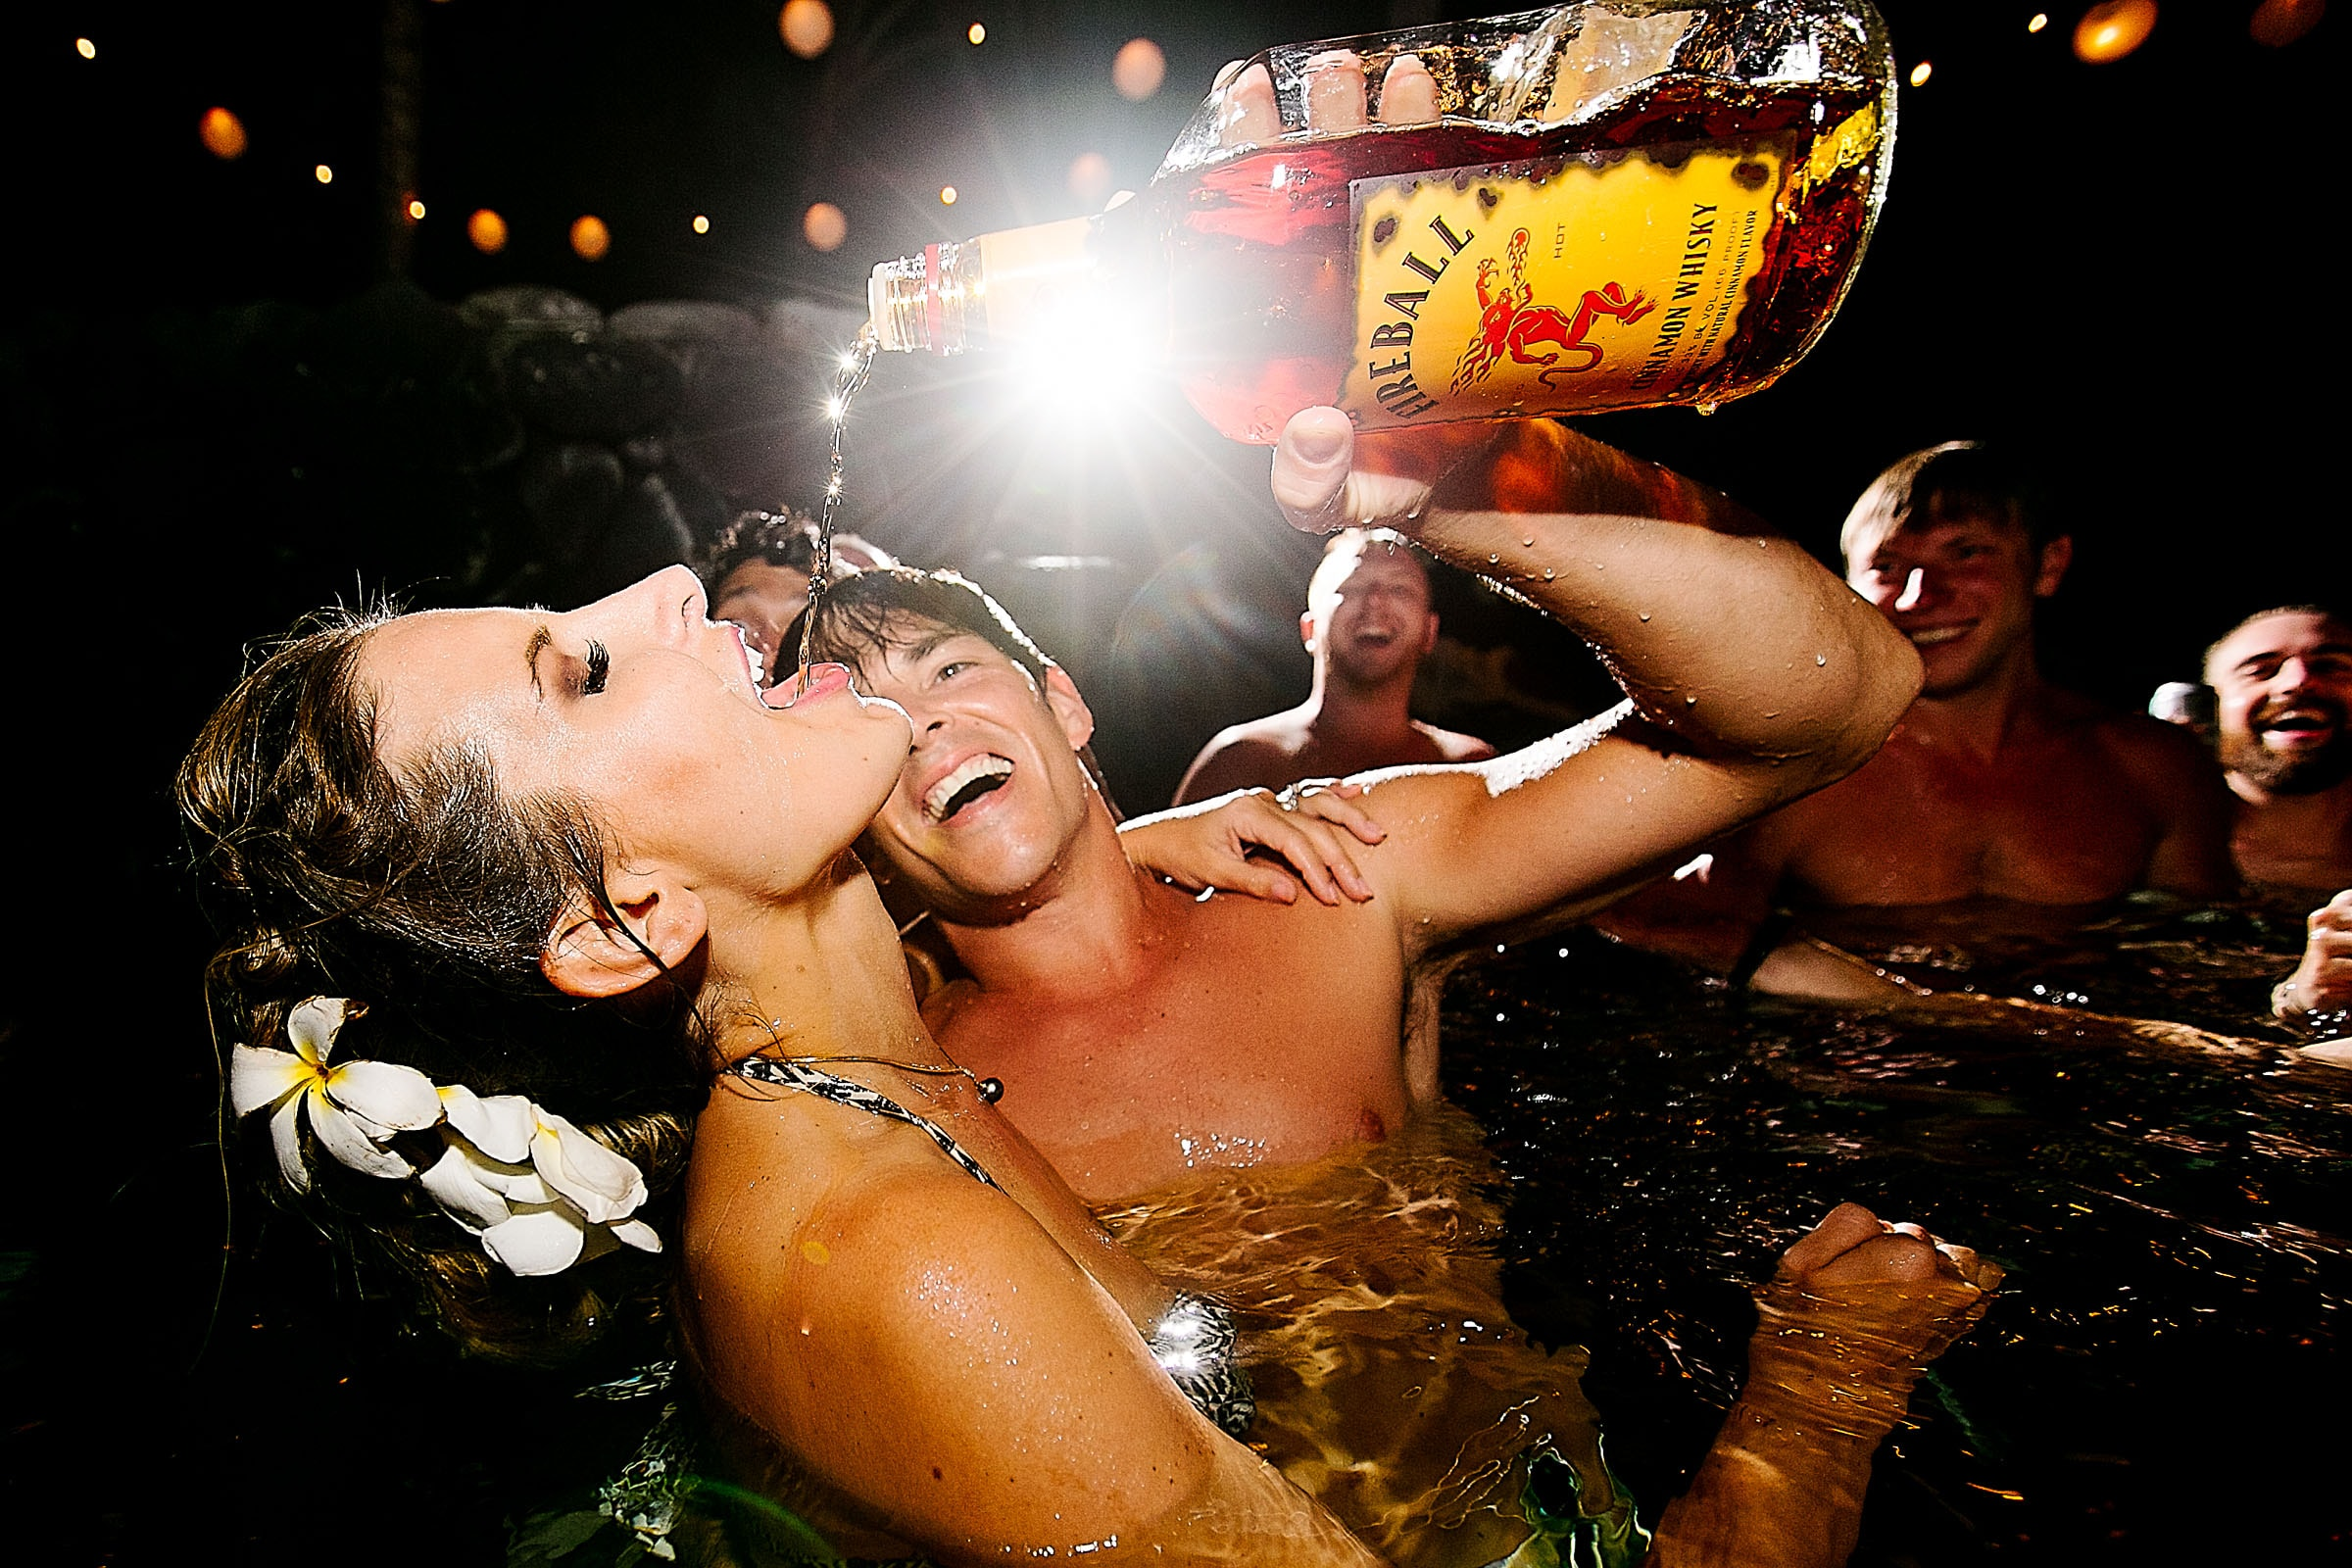 Bride having tequila poured into her mouth during a Kailua Kona Wedding at the Kona Beach Bungalows on the Big Island of Hawaii